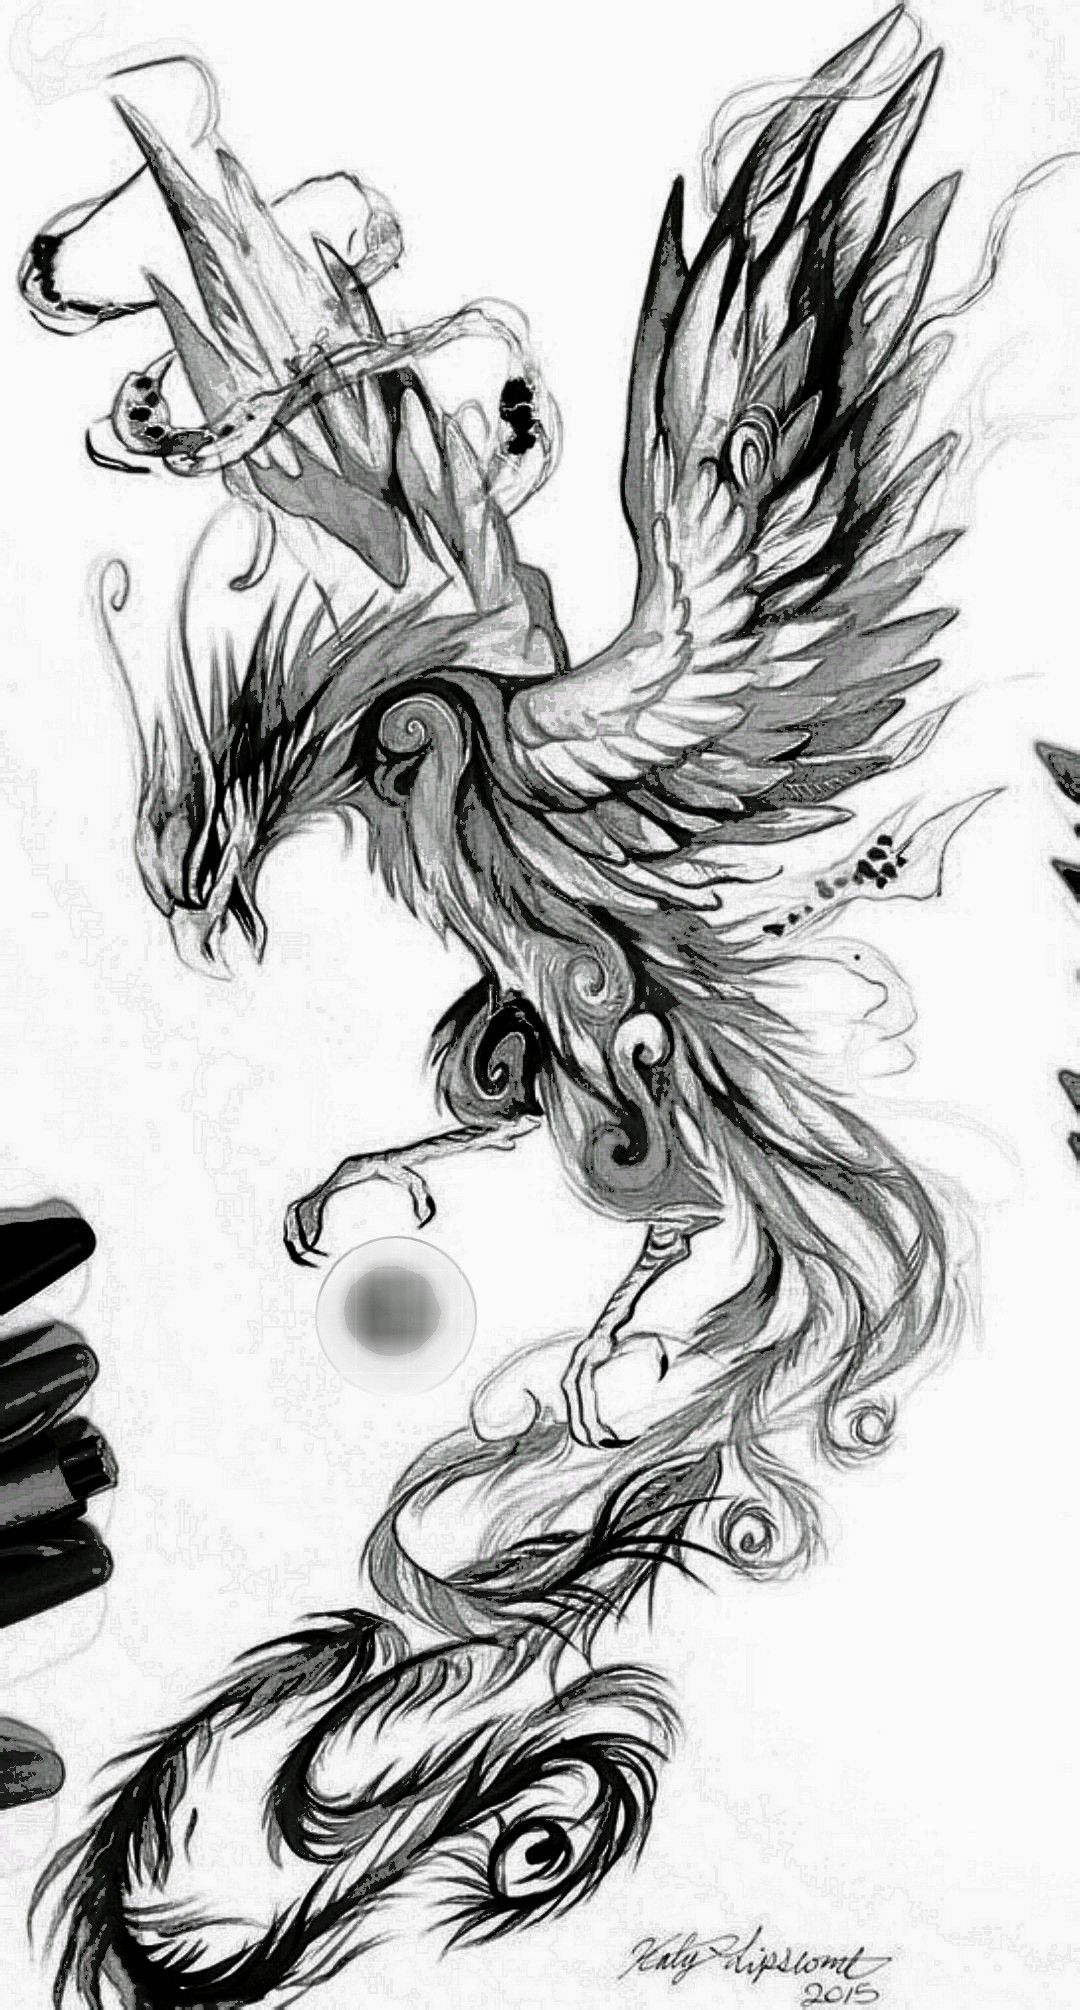 Phonix Skizze Phoenix Bird Tattoos Phoenix Tattoo Design Phoenix Tattoo Men